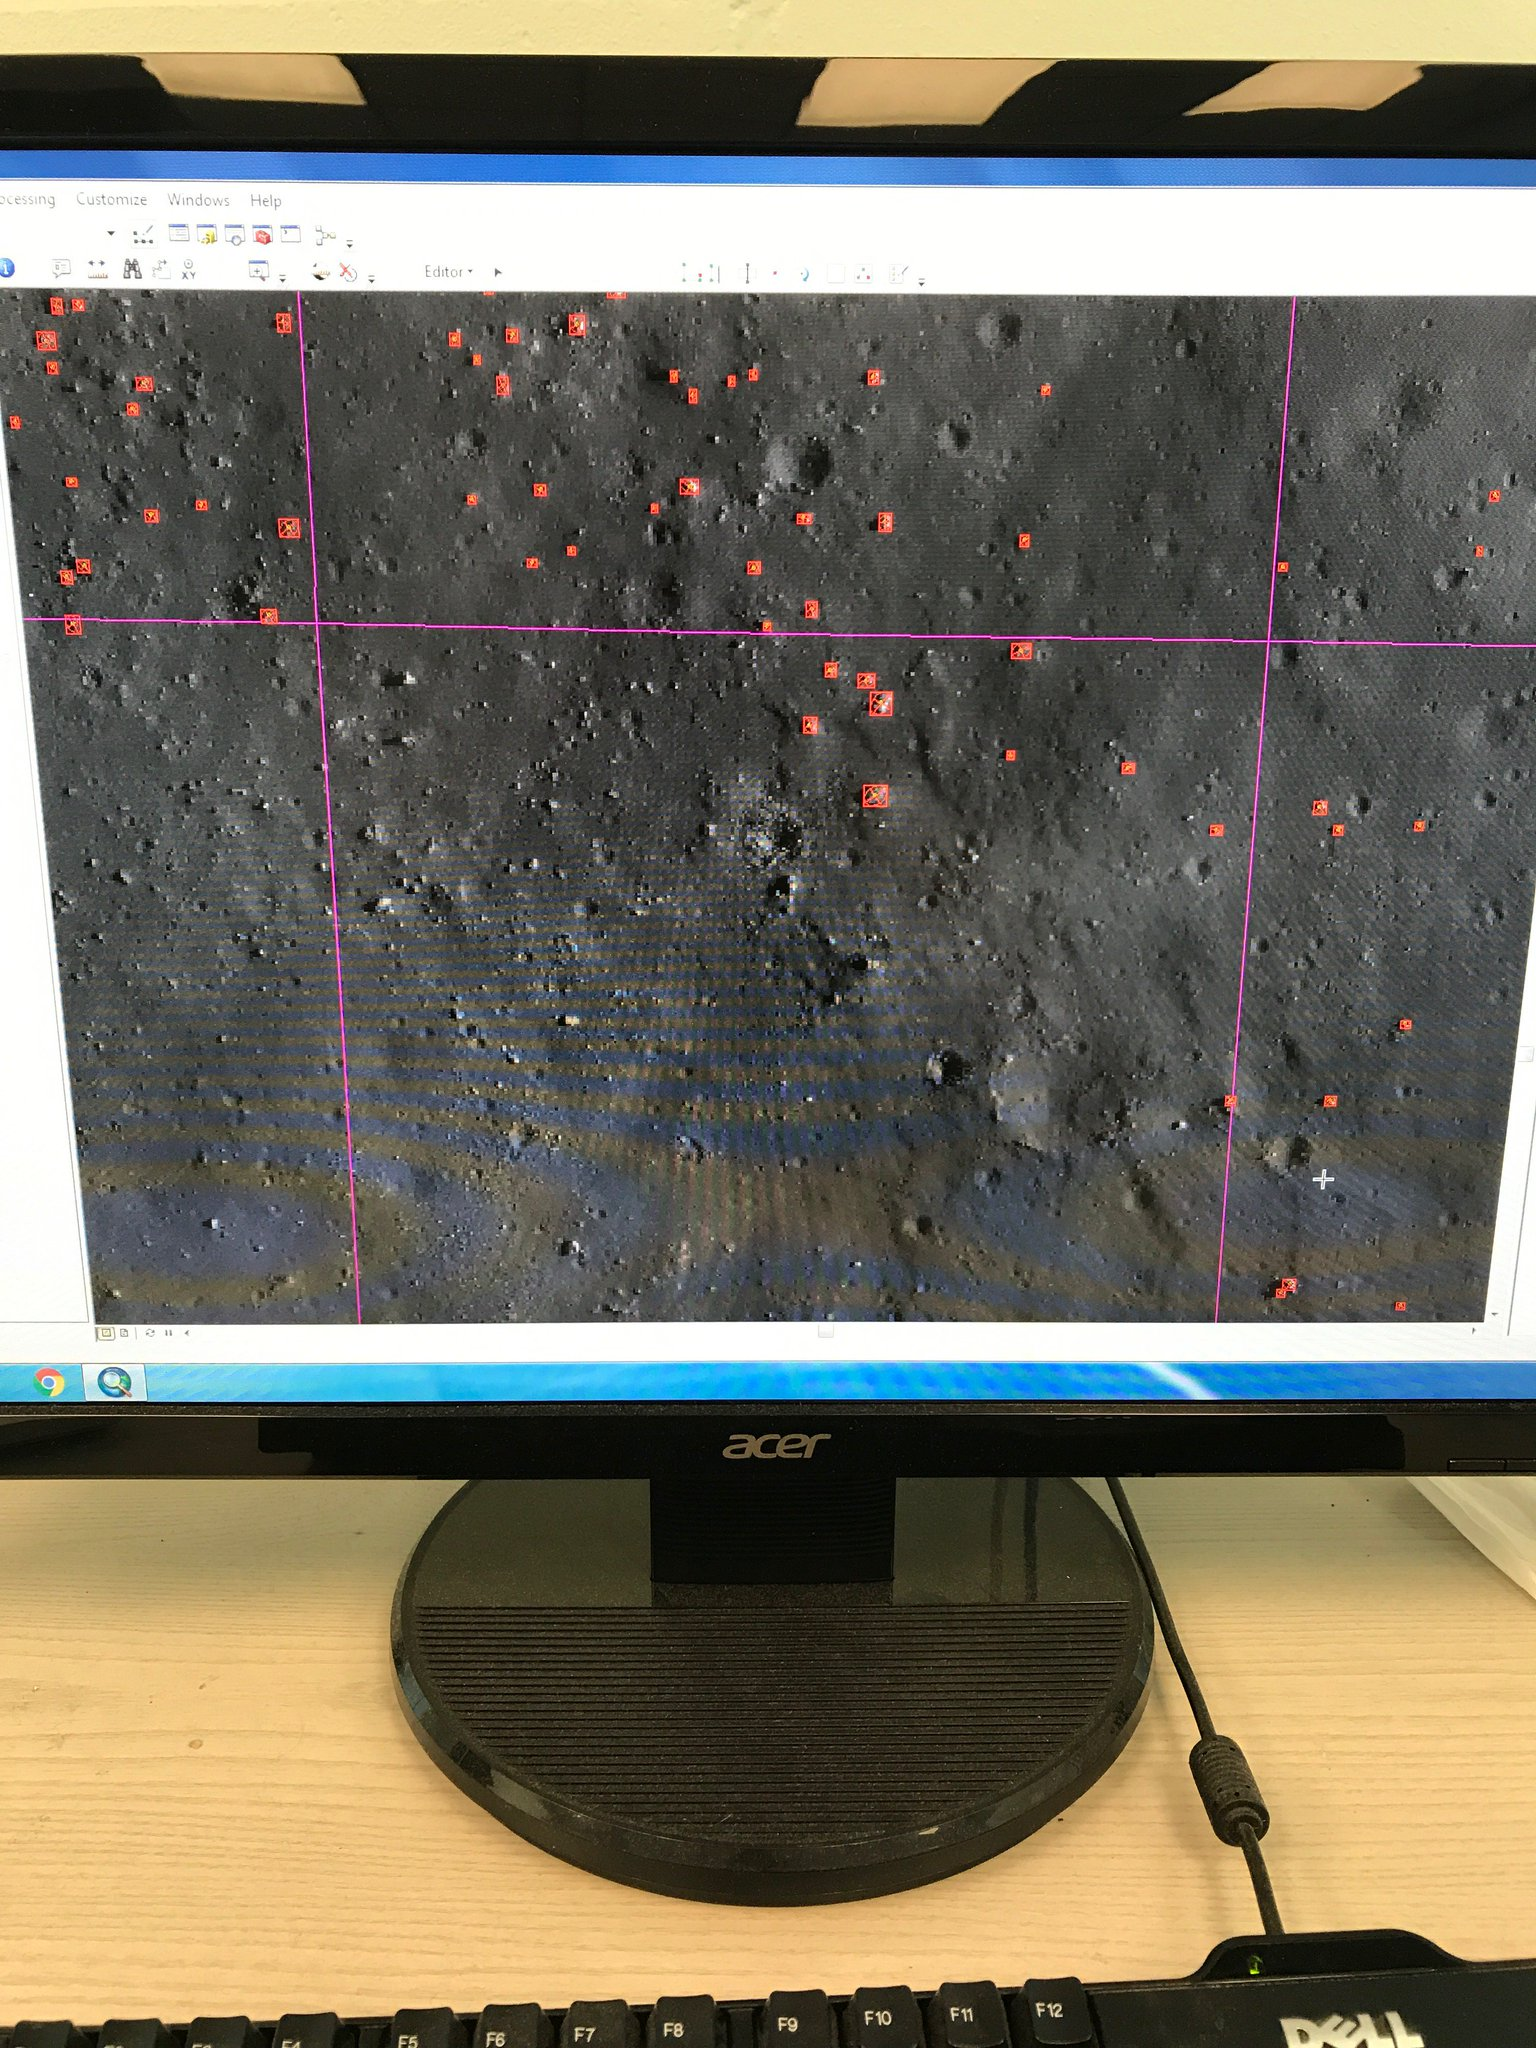 Currently, I spend a lot of time mapping boulders on the Moon, trying to understand how rocks breakdown #scienceathon #dayofscience https://t.co/fW8Qng8PI6